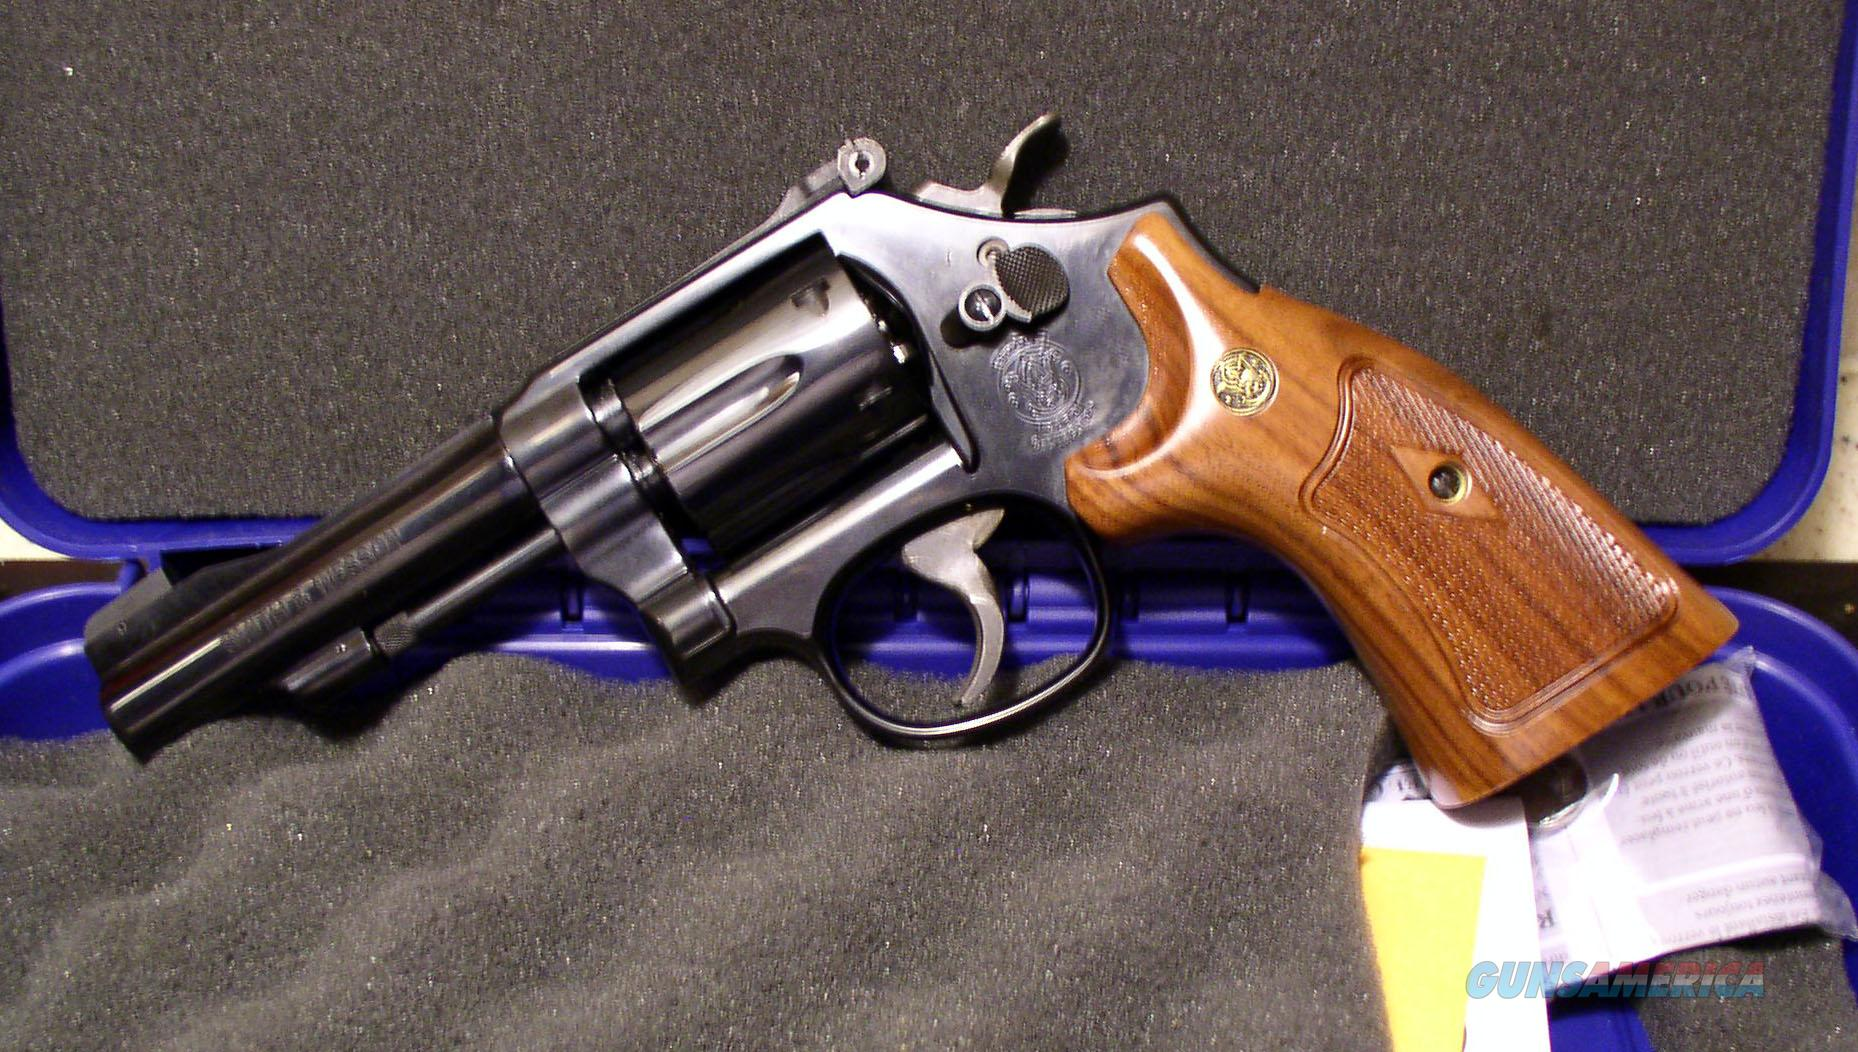 SMITH & WESSON MODEL 18 CLASSIC  Guns > Pistols > Smith & Wesson Revolvers > Full Frame Revolver